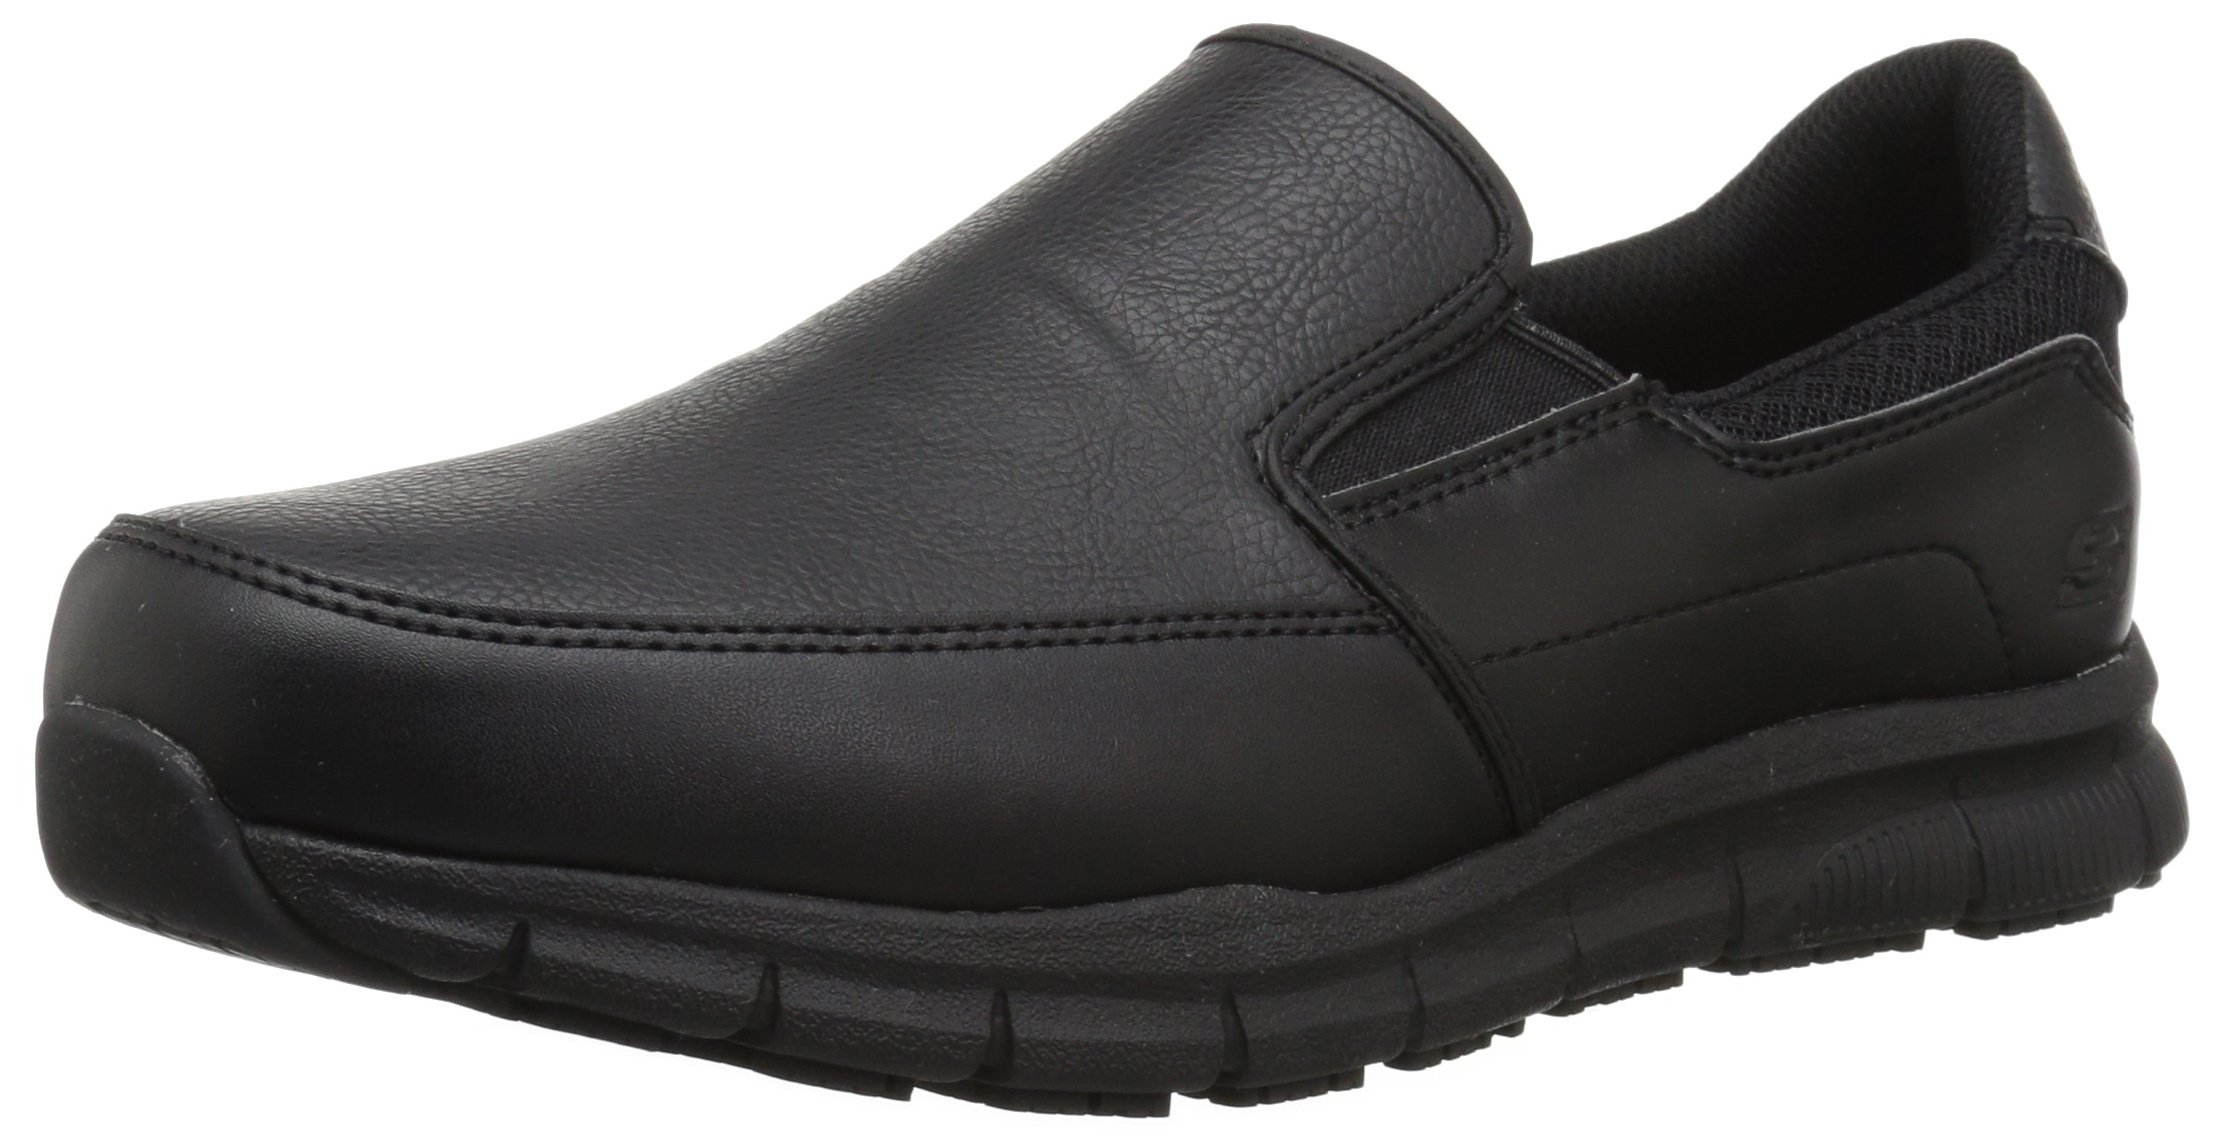 Skechers for Work Men's Nampa-Groton Food Service Shoe,black polyurethane,11 M US